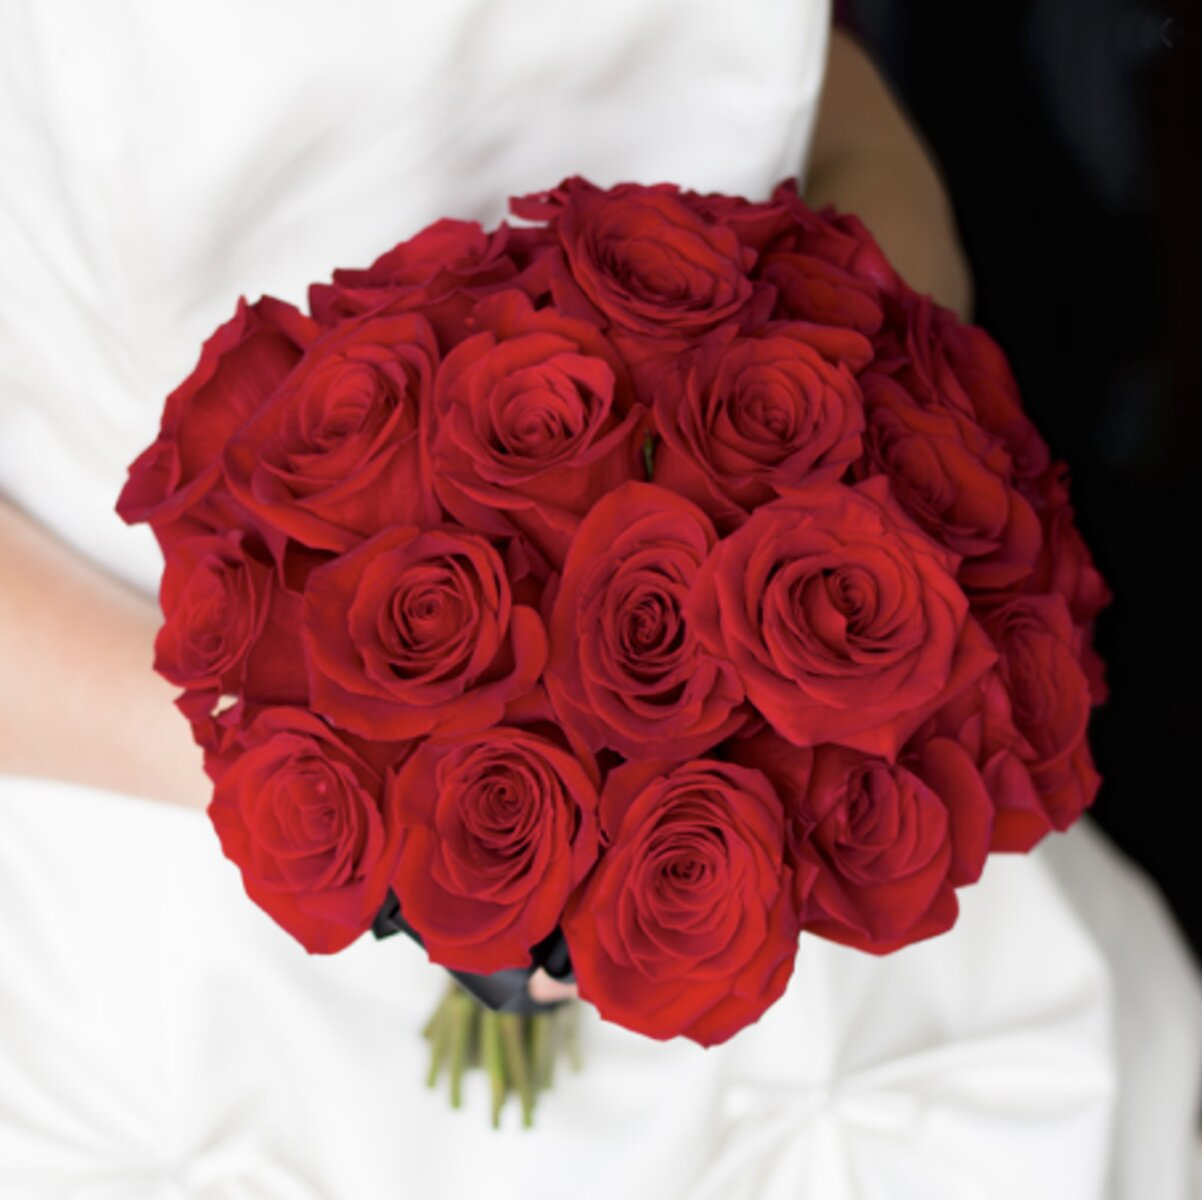 rose-bouquet-red-sydney-wedding-flowers-price-packages